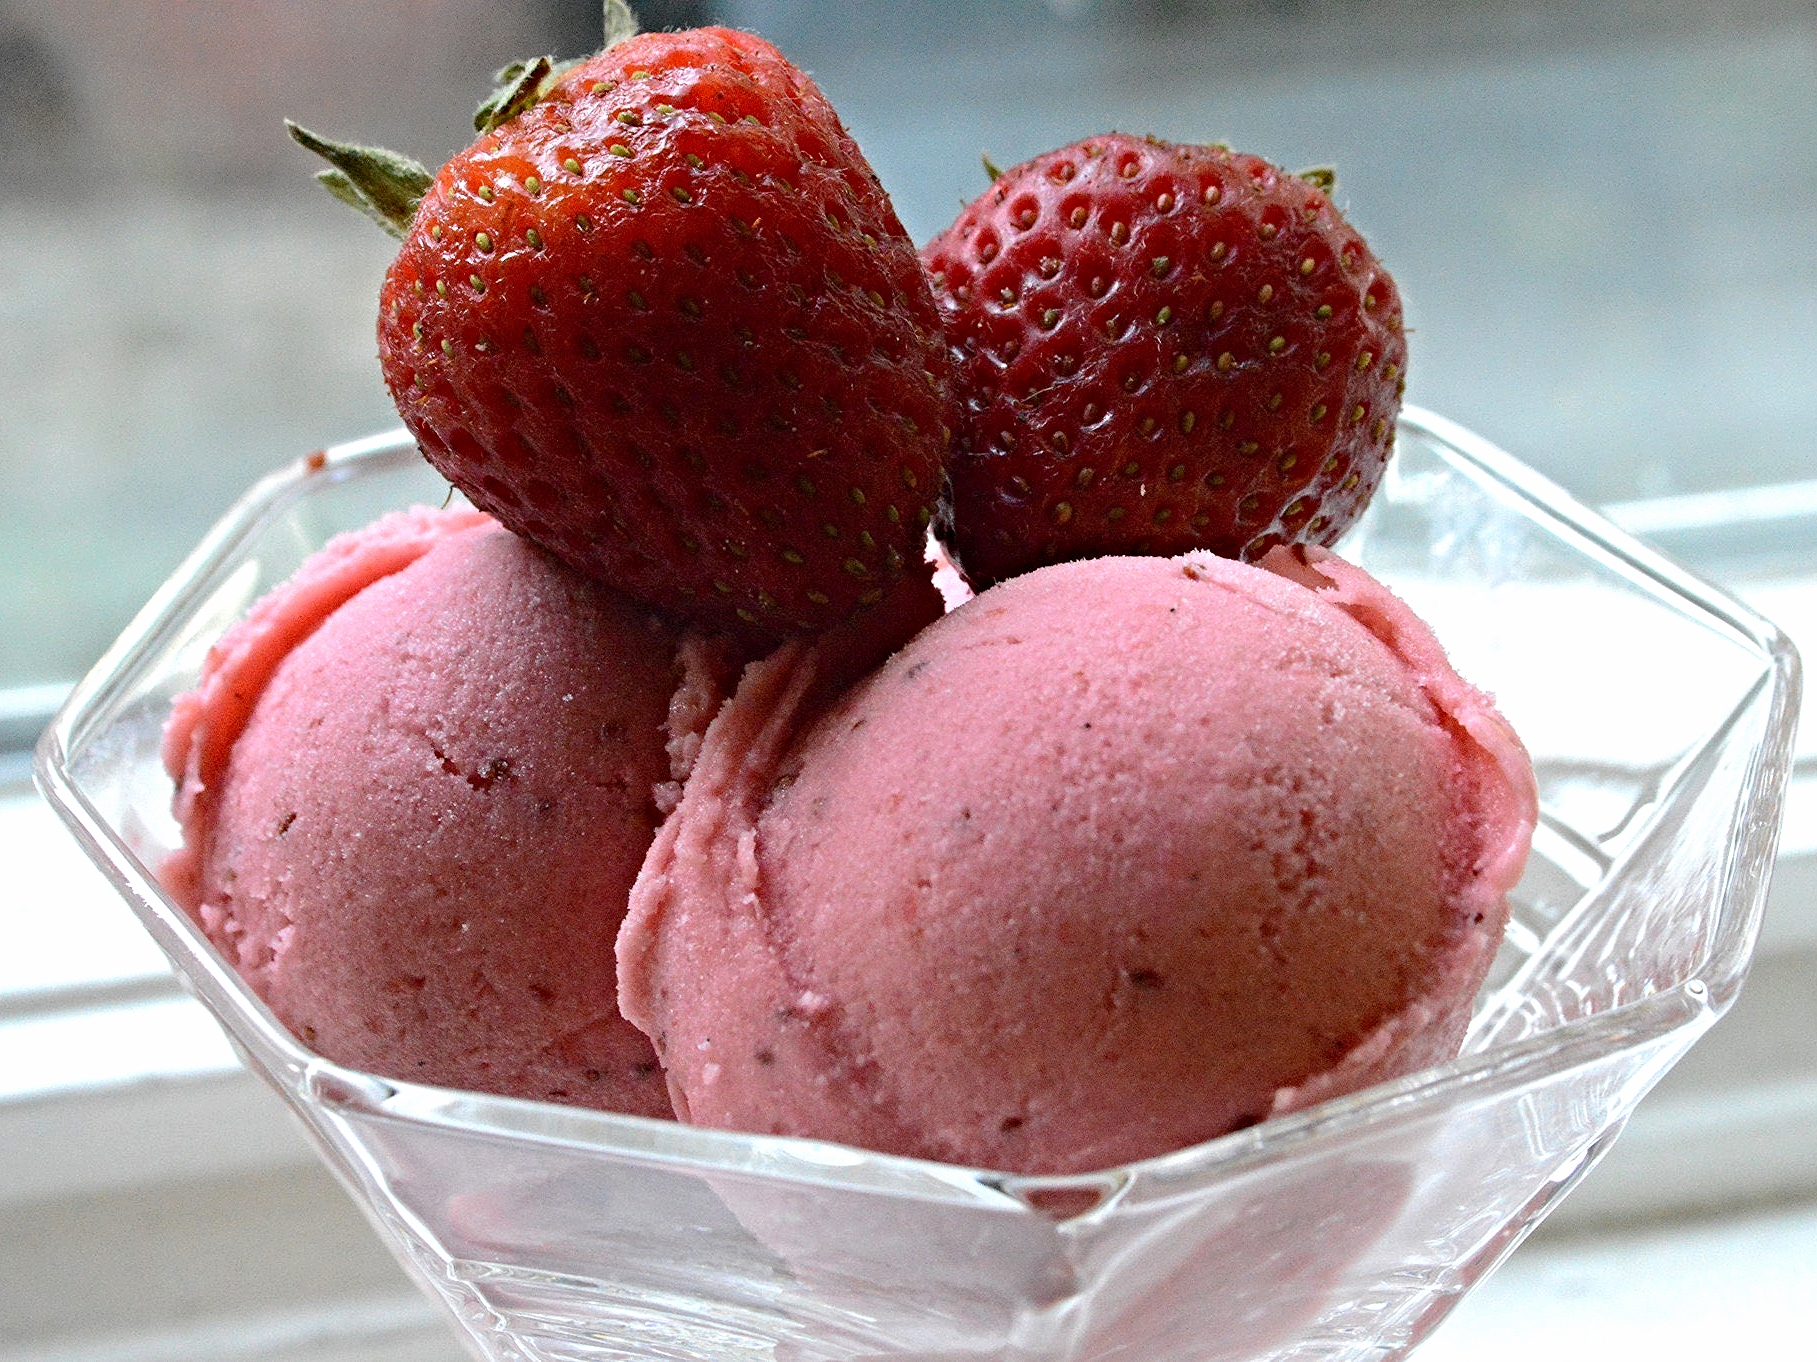 Roasted Strawberry-Buttermilk Sherbet